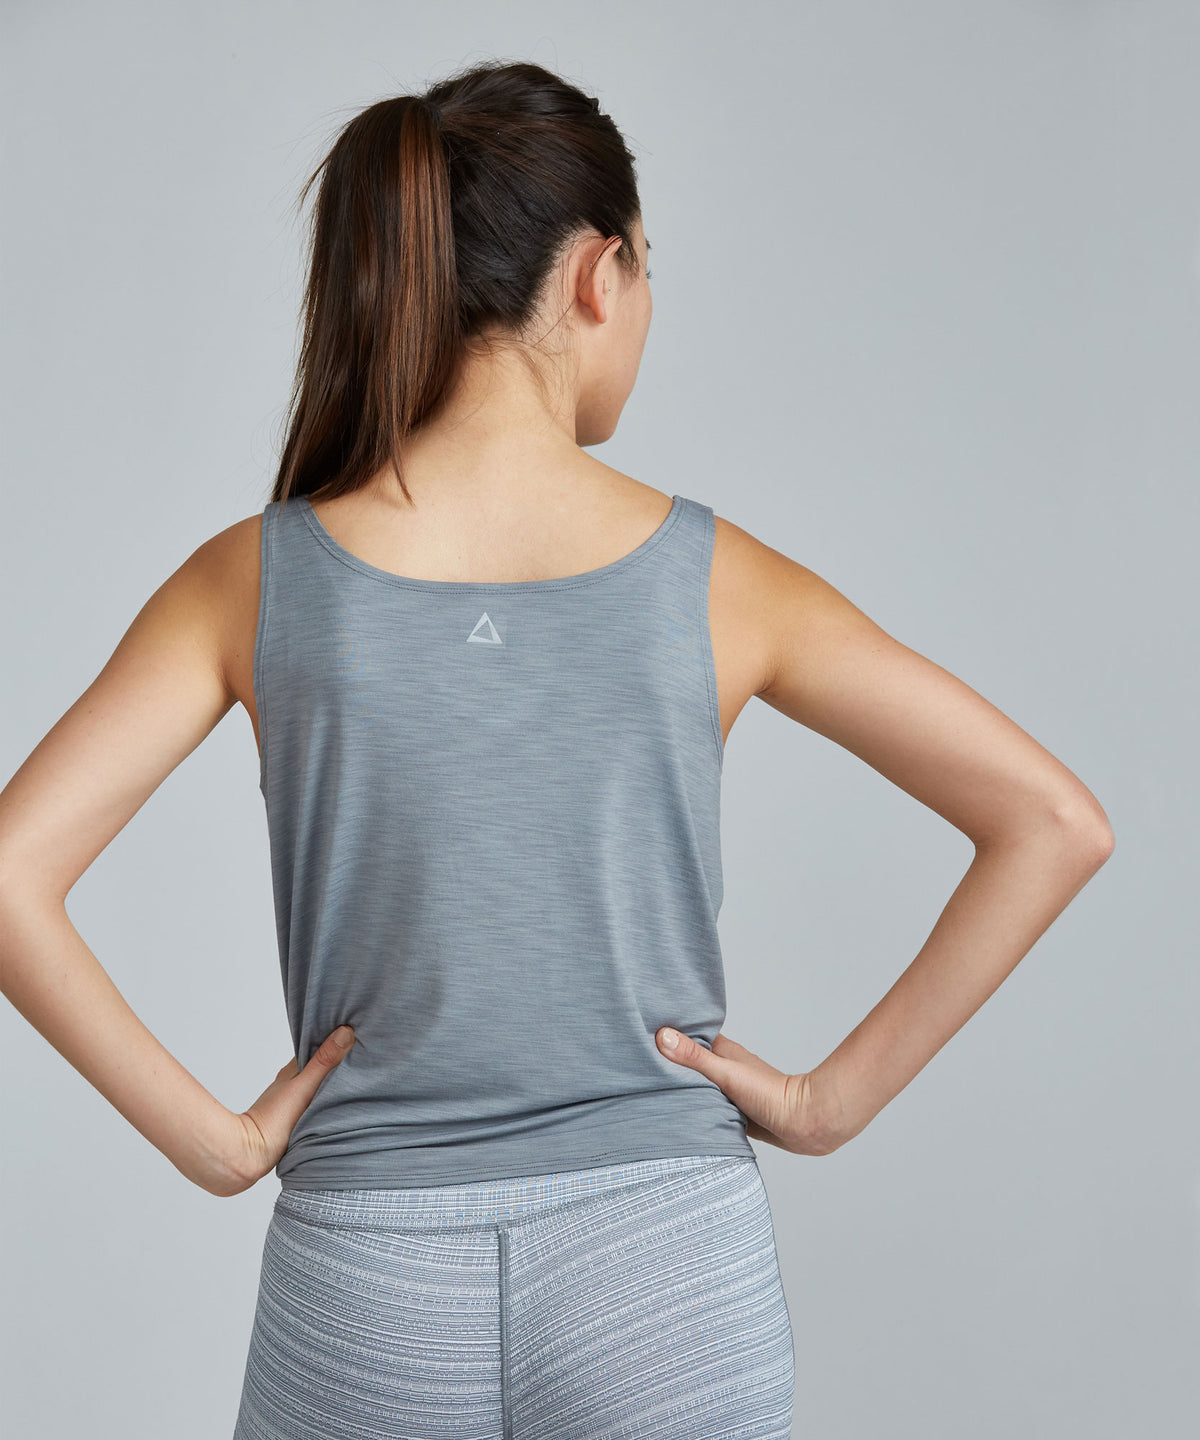 Lucy Top - Slate Slate Lucy Top - Women's Activewear Tank Top by PRISMSPORT